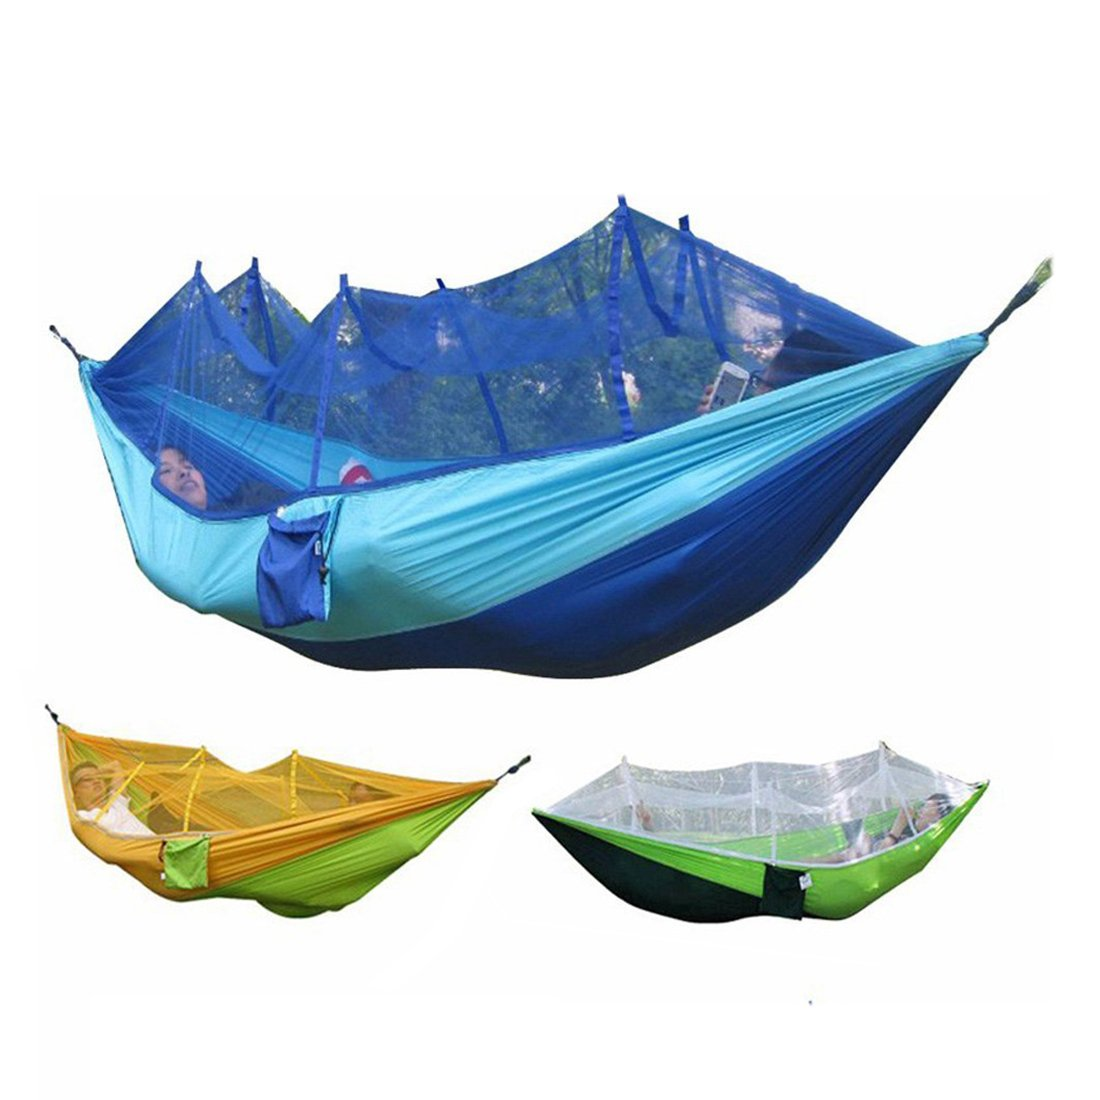 bestwareキャンプポータブル高強度パラシュート生地ハンモックHangingベッドwith Mosquito Net Sleeping Hammock B06XYJHJ5R  Blue & Navy Blue